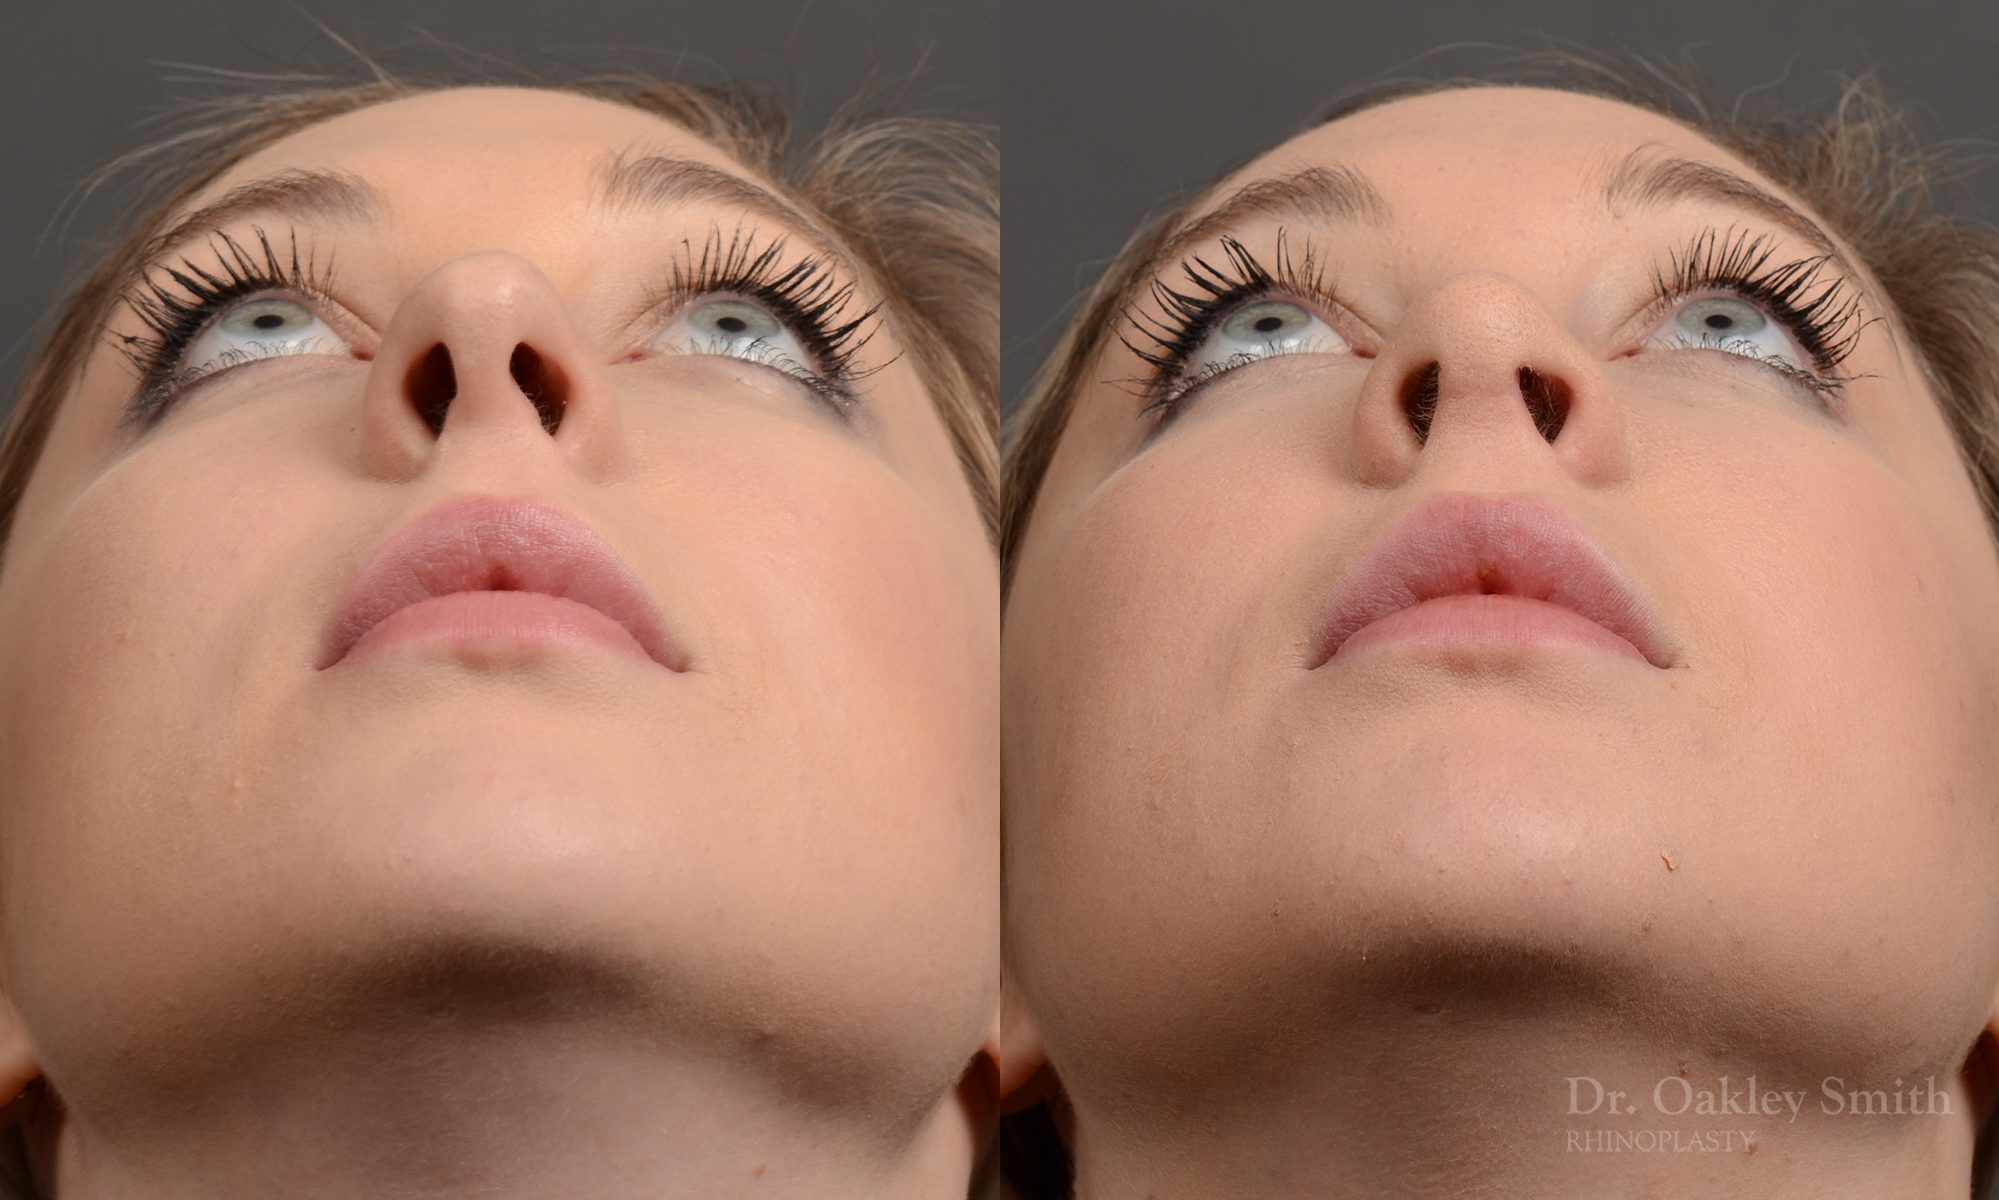 Hump Reduction, Rhinoplasty - Rhinoplasty Before and After Case 348